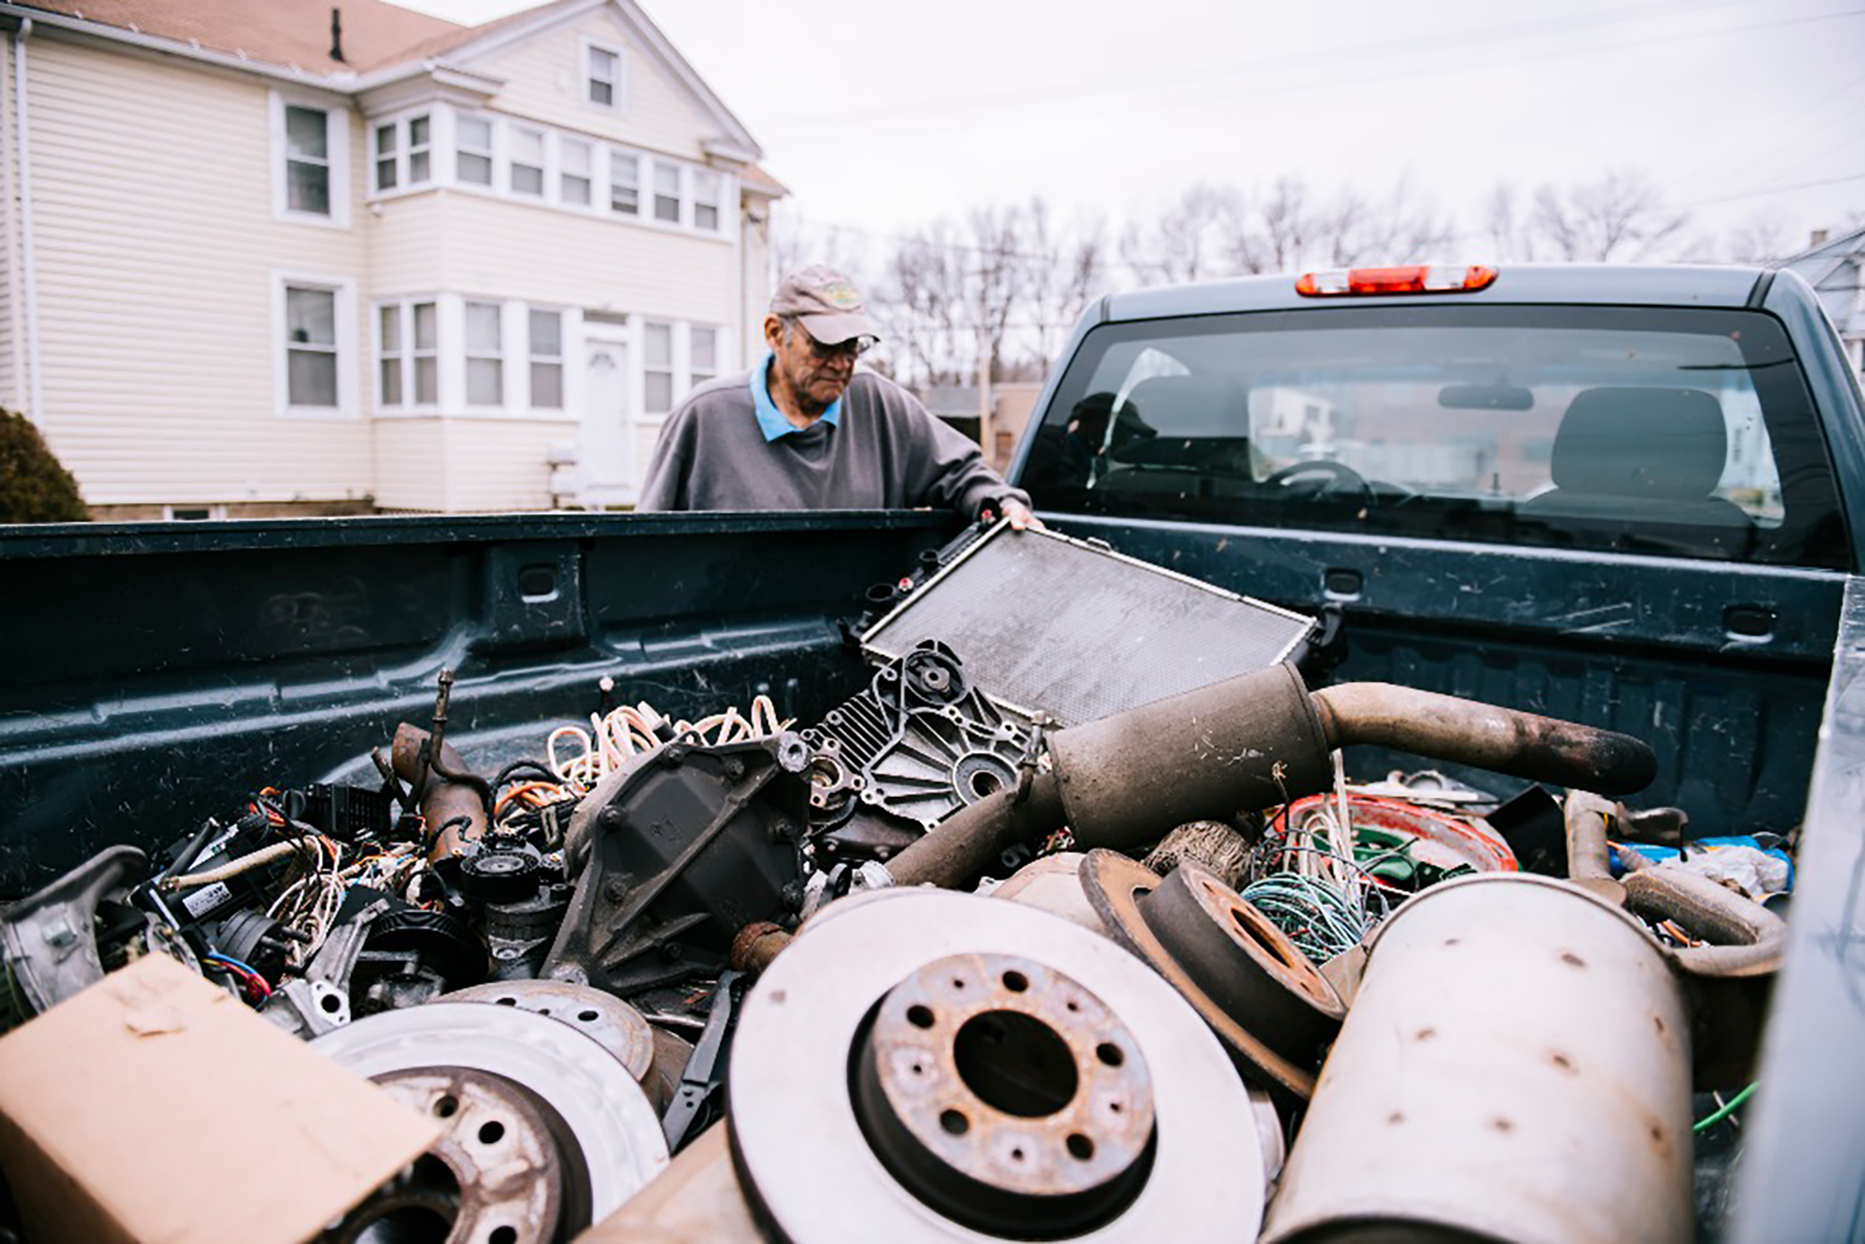 connecticut-veteran-collects-scrap-metal